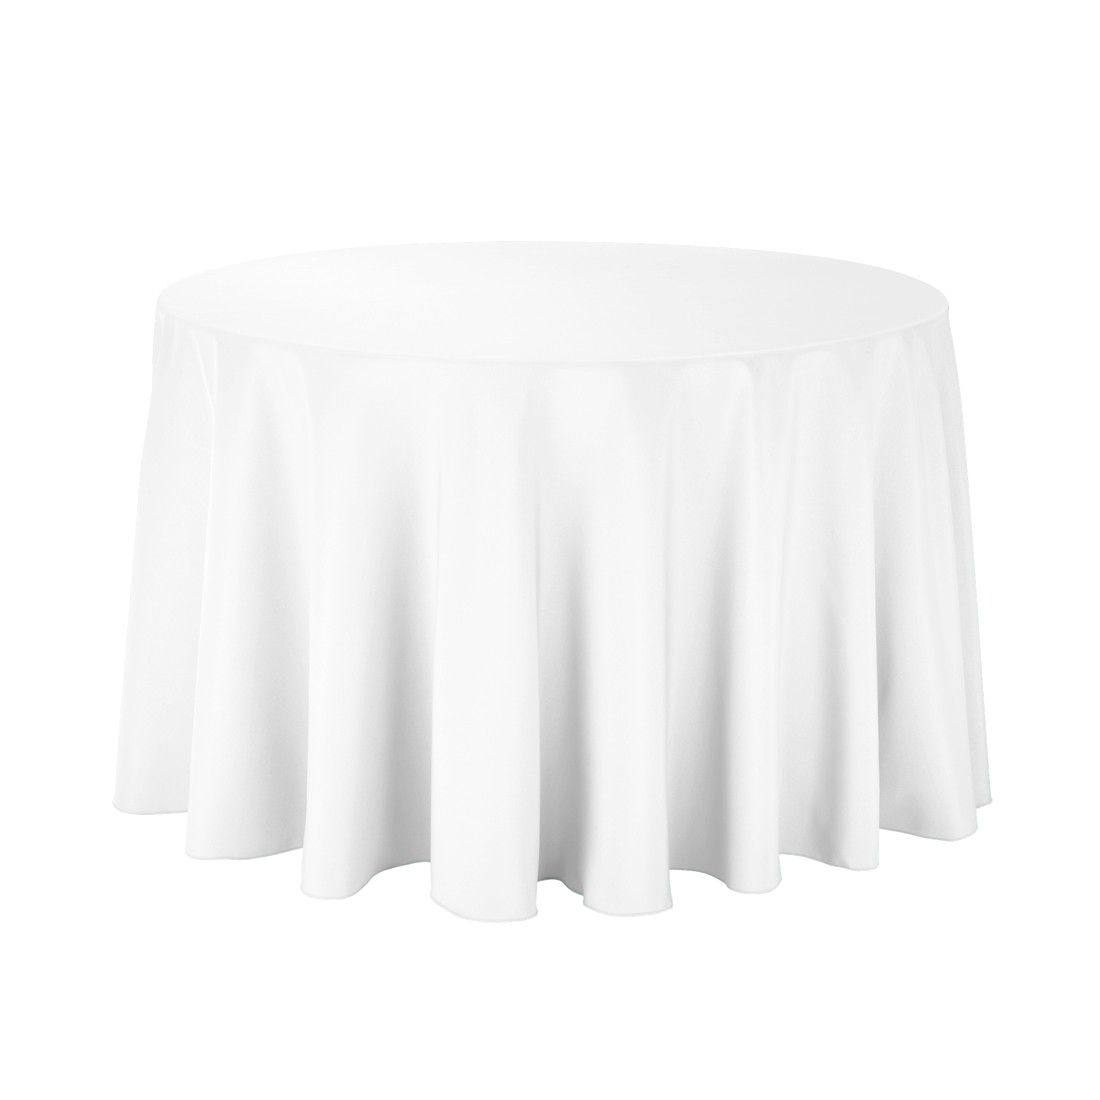 108 Inch Round Economy Polyester Tablecloth White On A 48 Inch Round Table Price At 8 25 And Free Shipping Over White Table Cloth Table Cloth Round Tablecloth